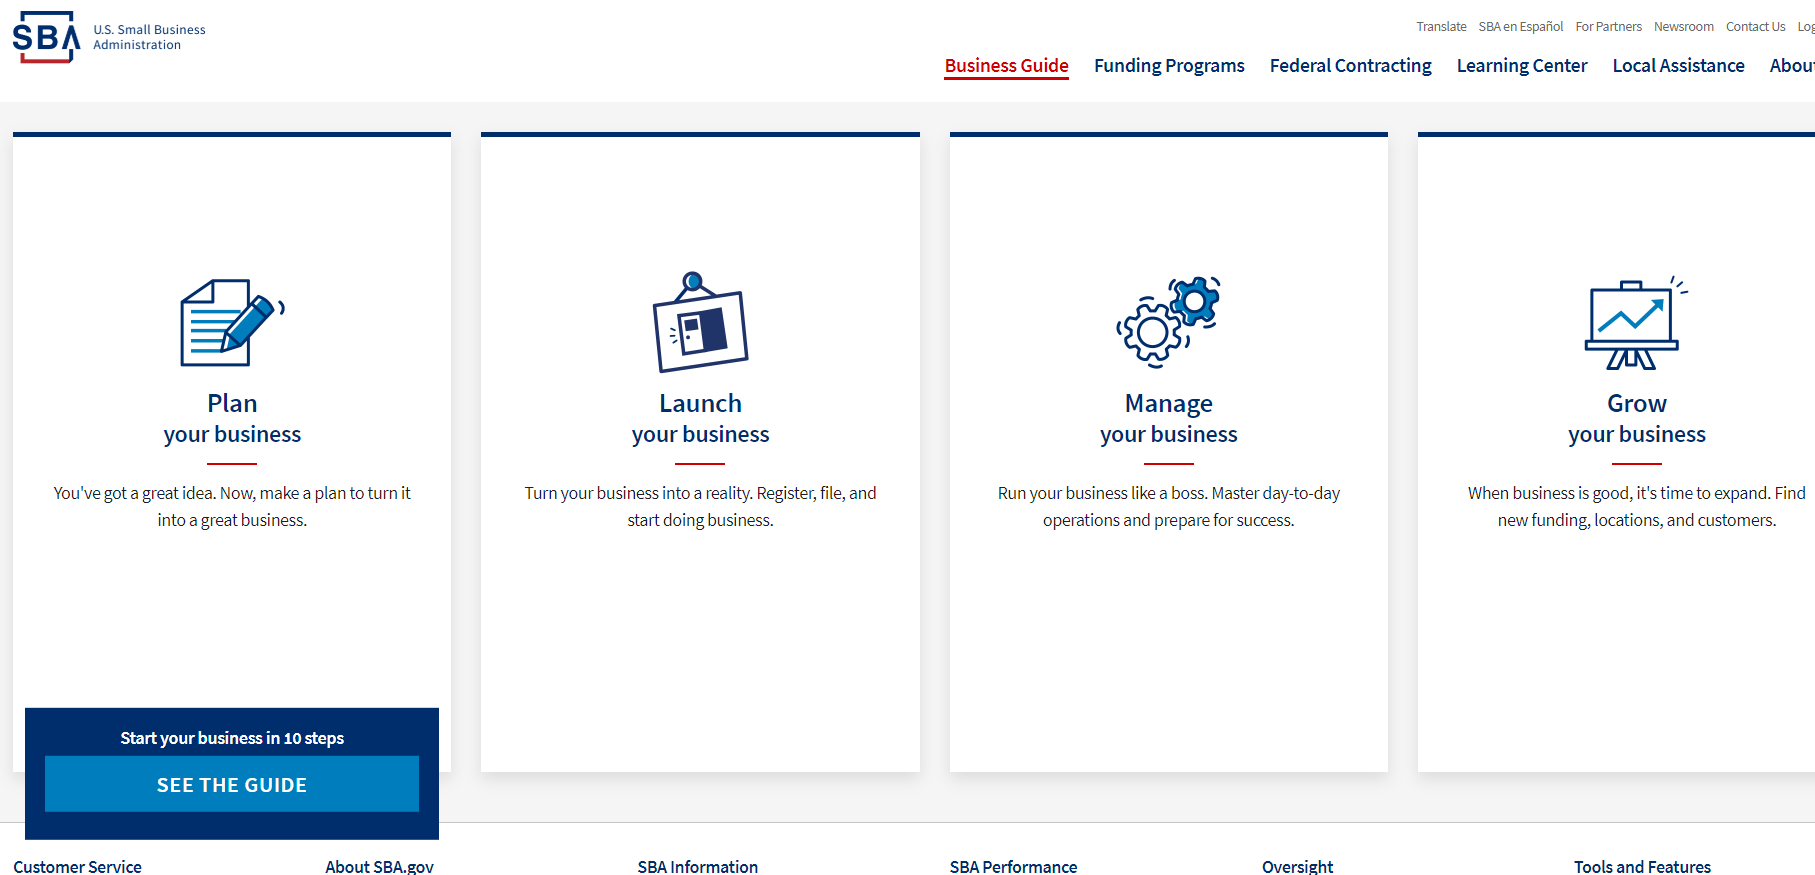 Small Business Administration (SBA) Landing Page